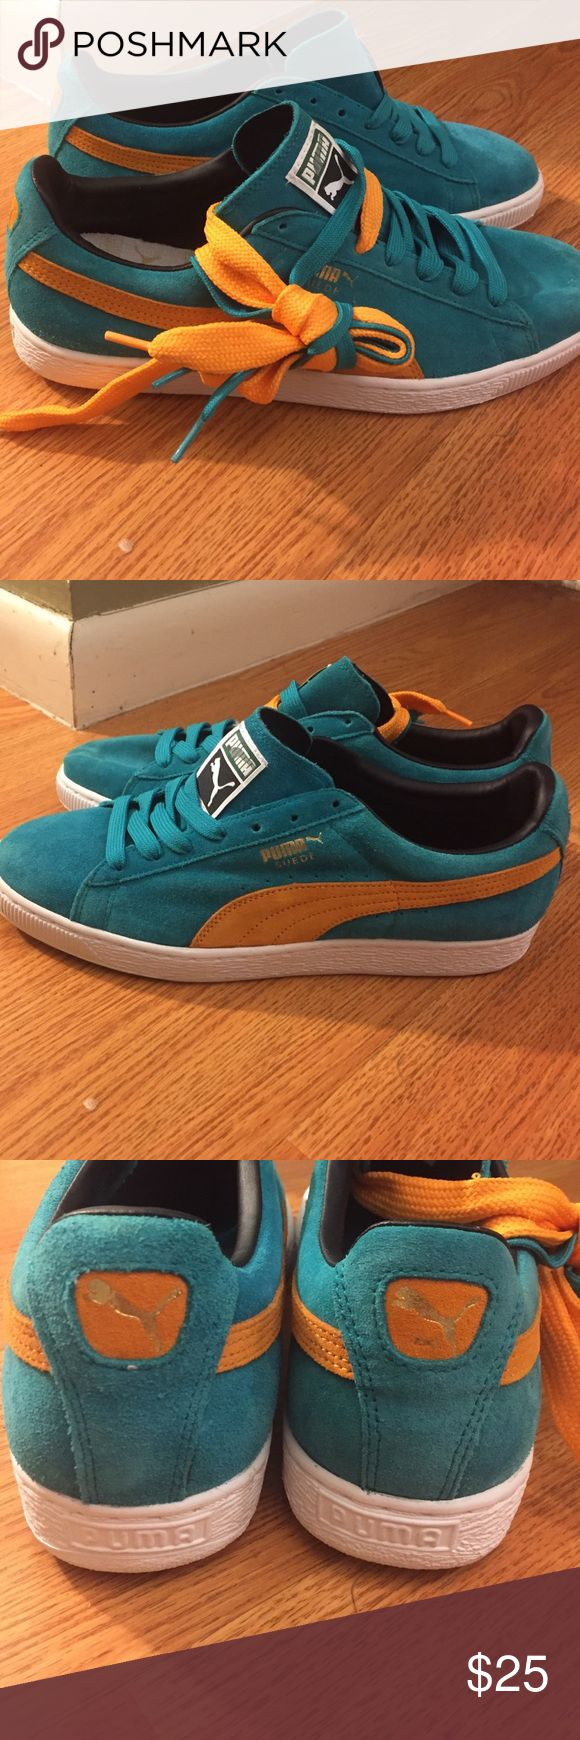 Brand new never worn men's Puma sneakers Never worn, brand new mans Puma sneakers. Bluish green suede with oOrange Puma stripe. Comes with both colored laces. Size 9 1/2. Very comfortable. Stylish! Perfect holiday gift for any boy or man in your life 😁 Puma Shoes Sneakers